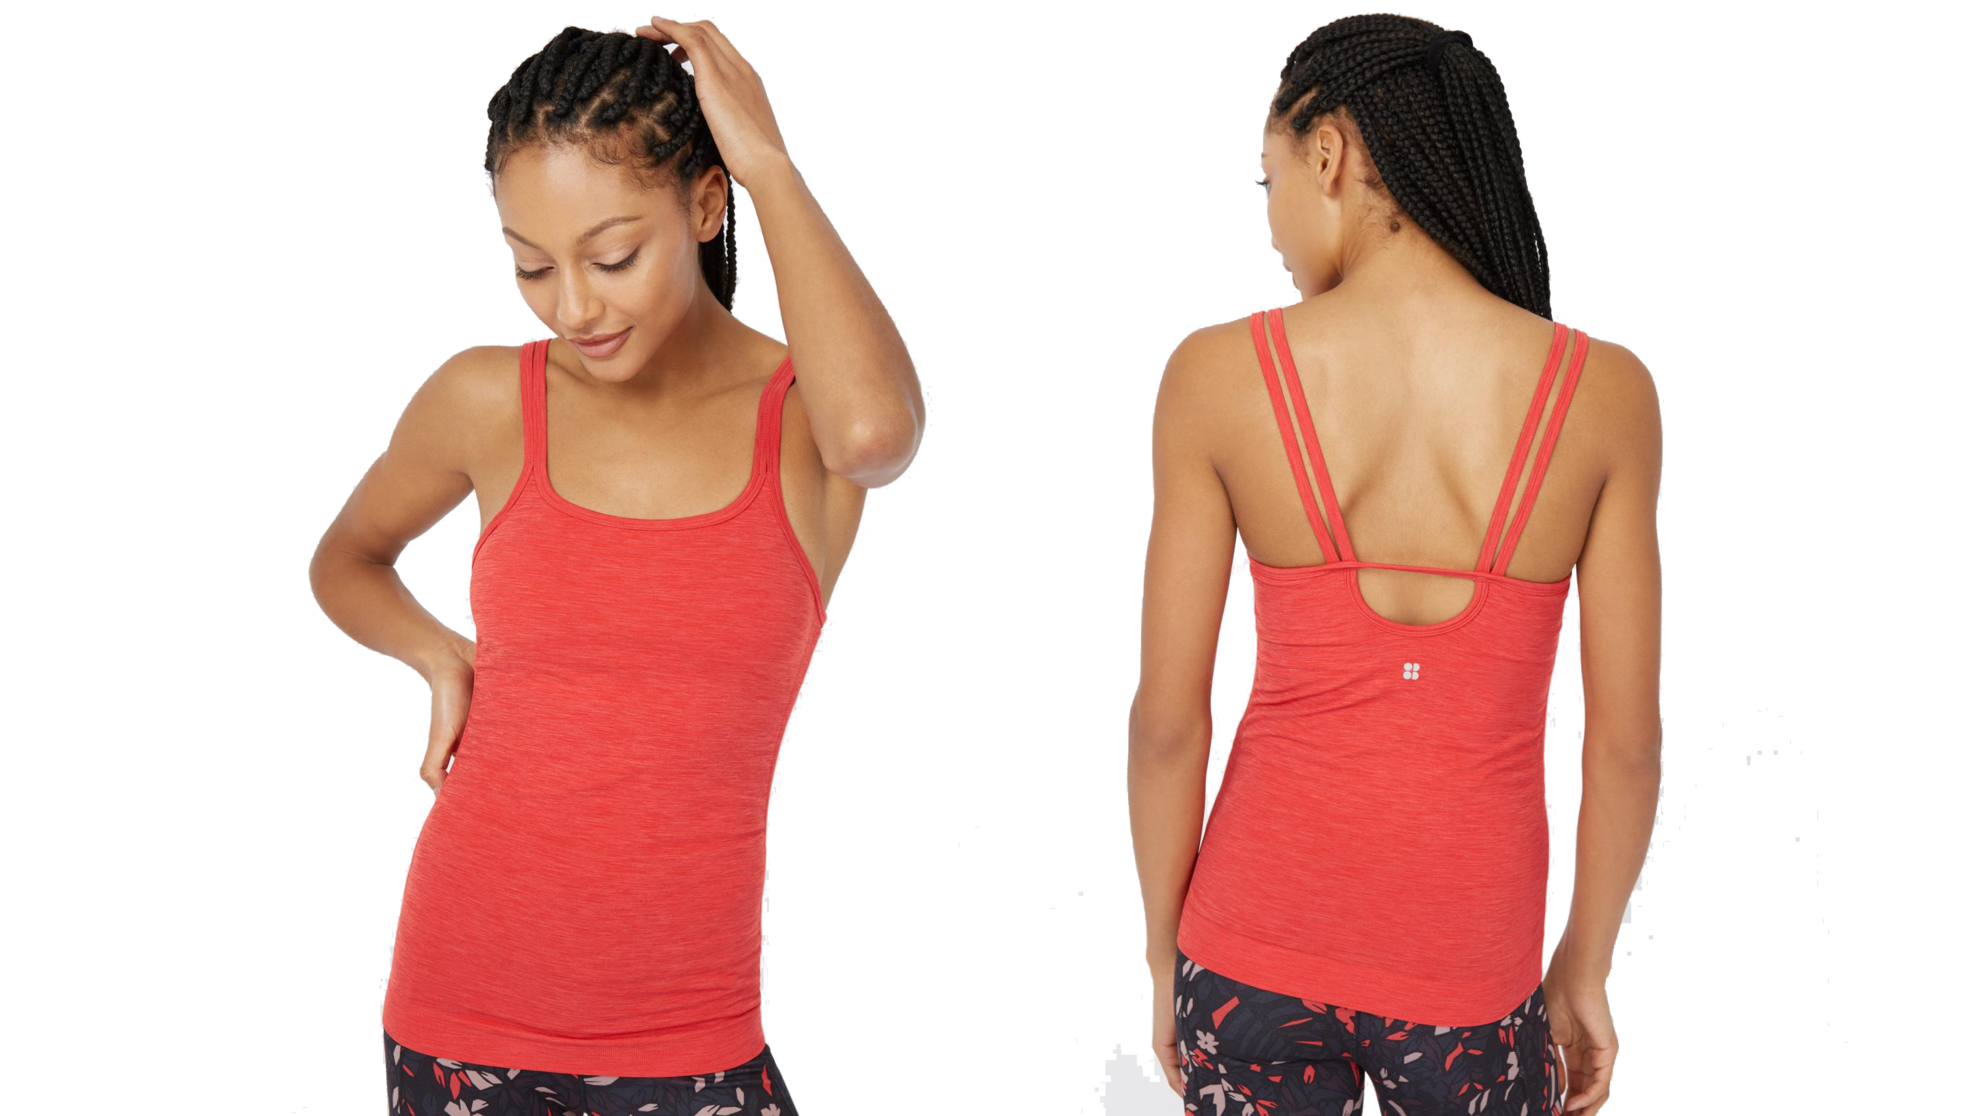 d2616b21173b49 The Best Workout Tank Tops That Show Off Your Back - Health